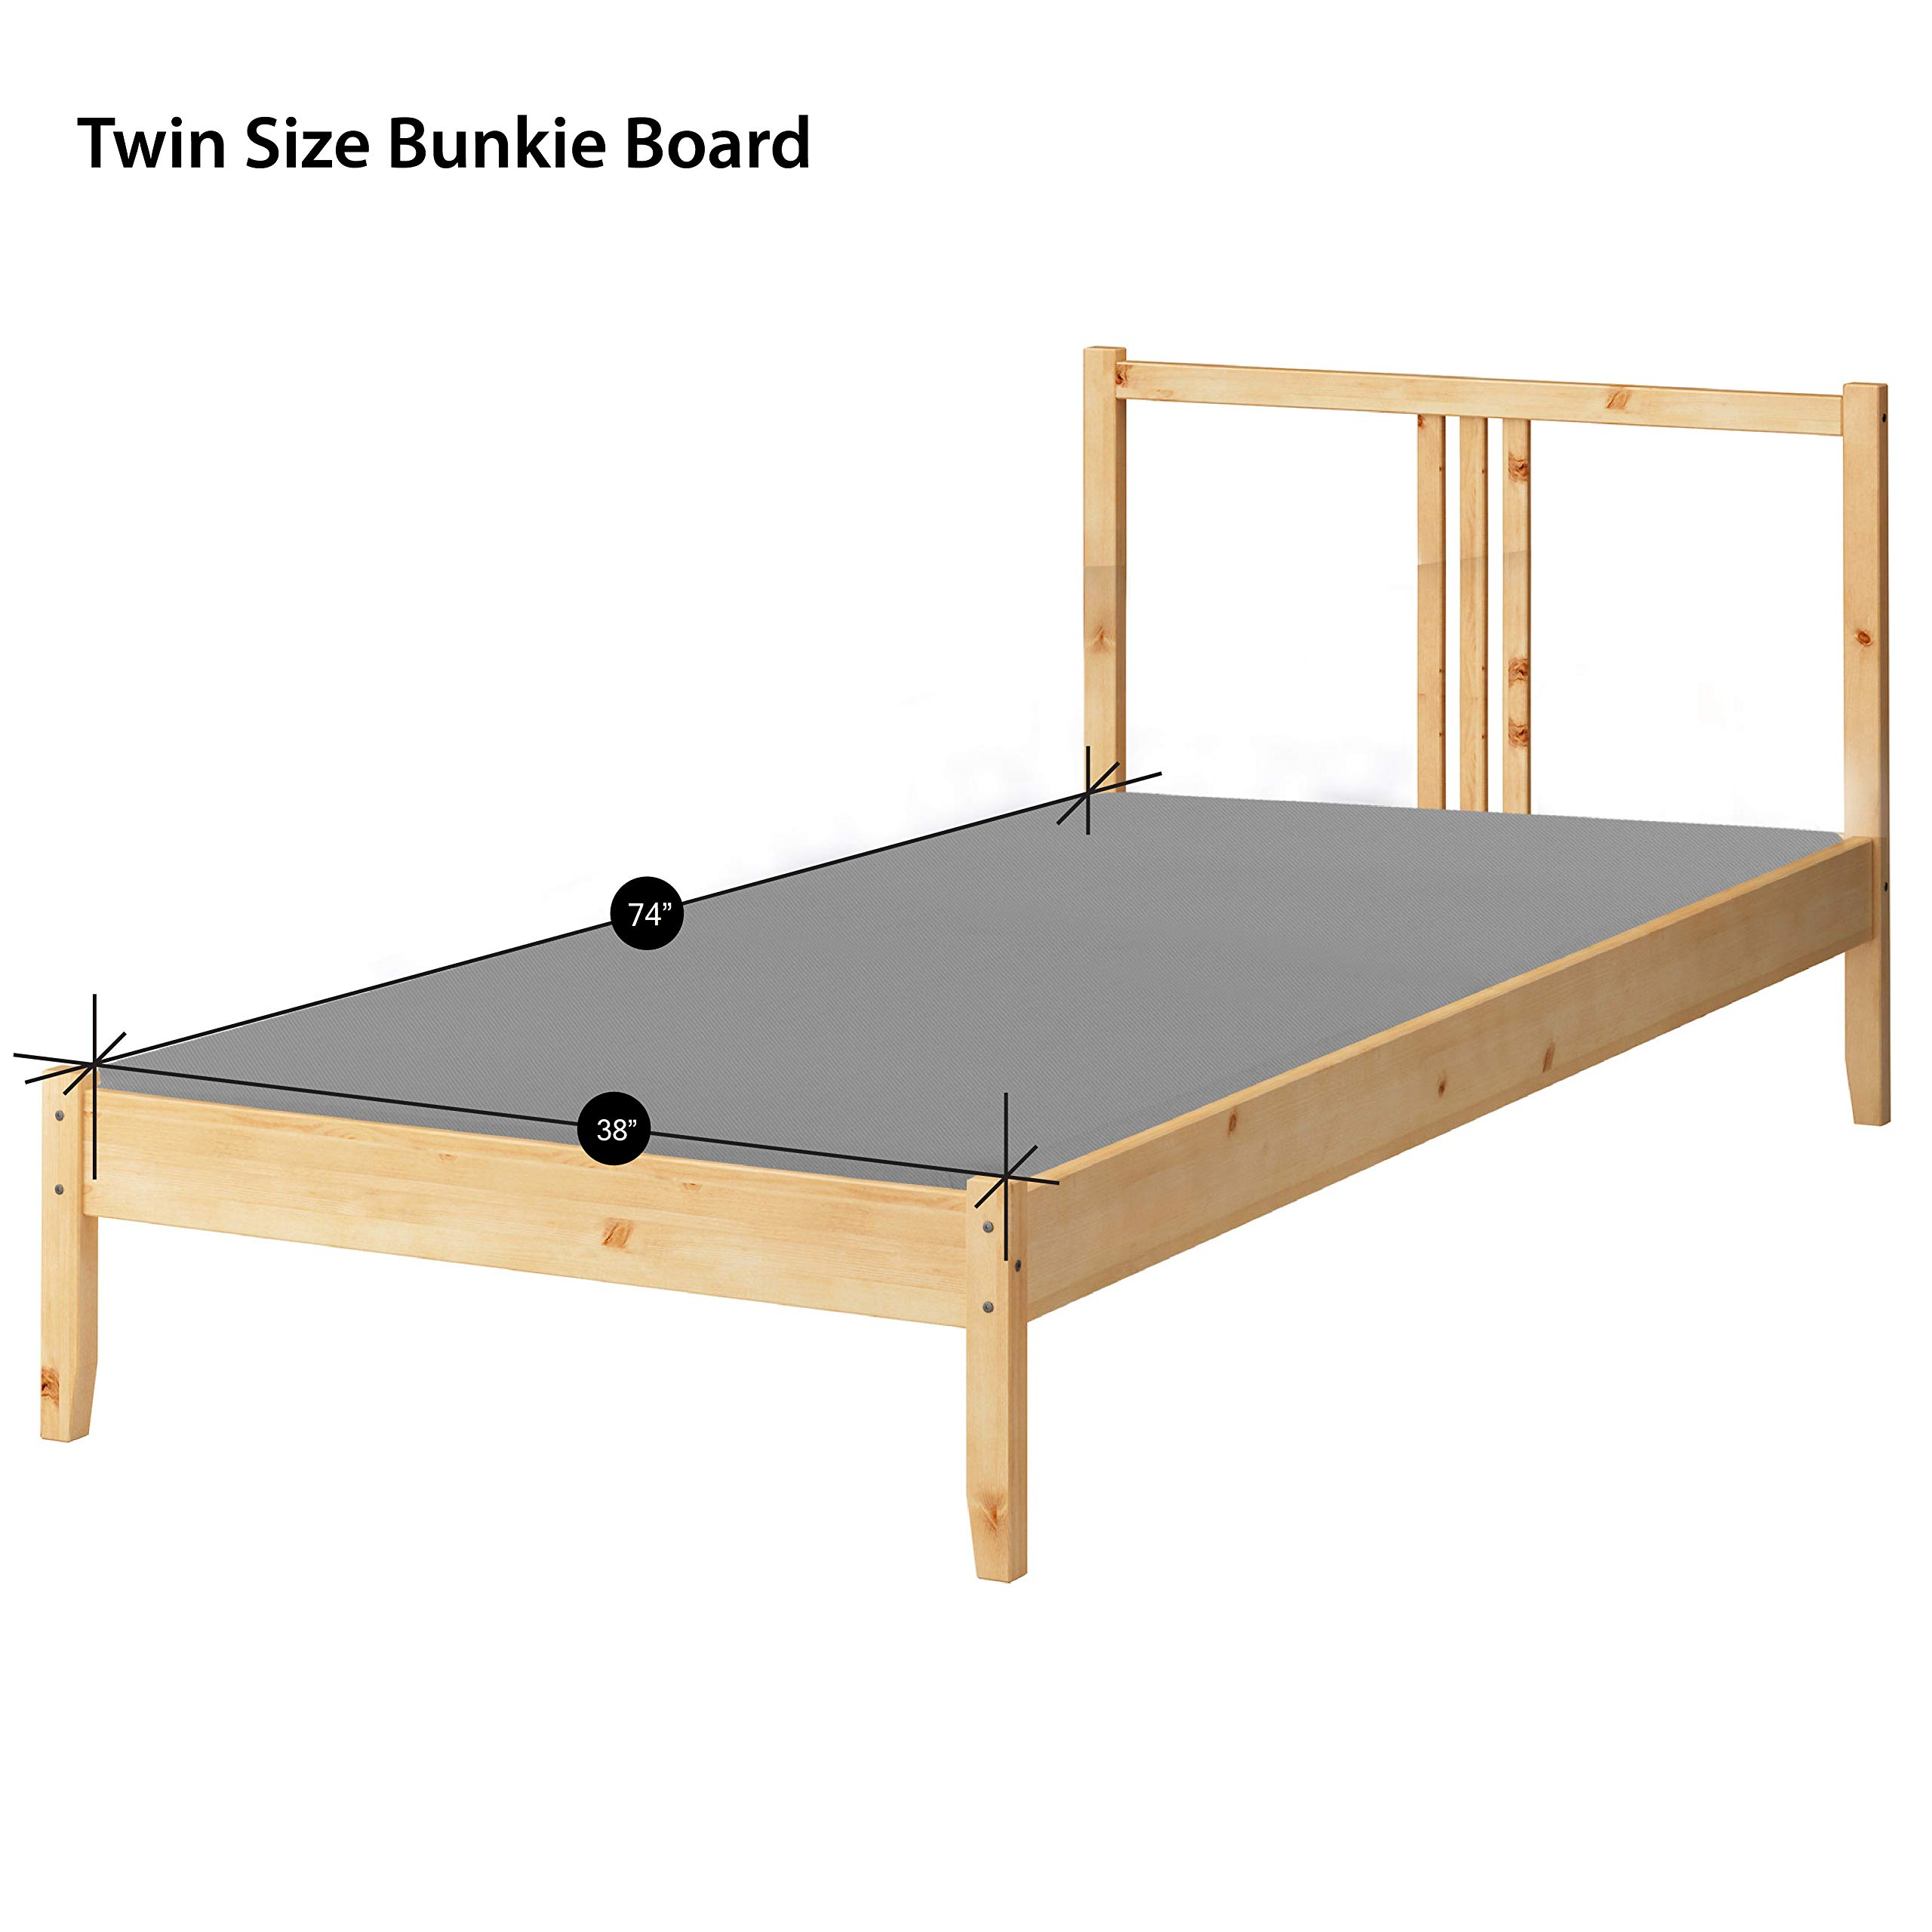 Greaton 1.5-Inch Solid Wood Bunkie Board Mattress/Bed Support, Fits Standard, Twin Size, 74x38x1.5, Grey